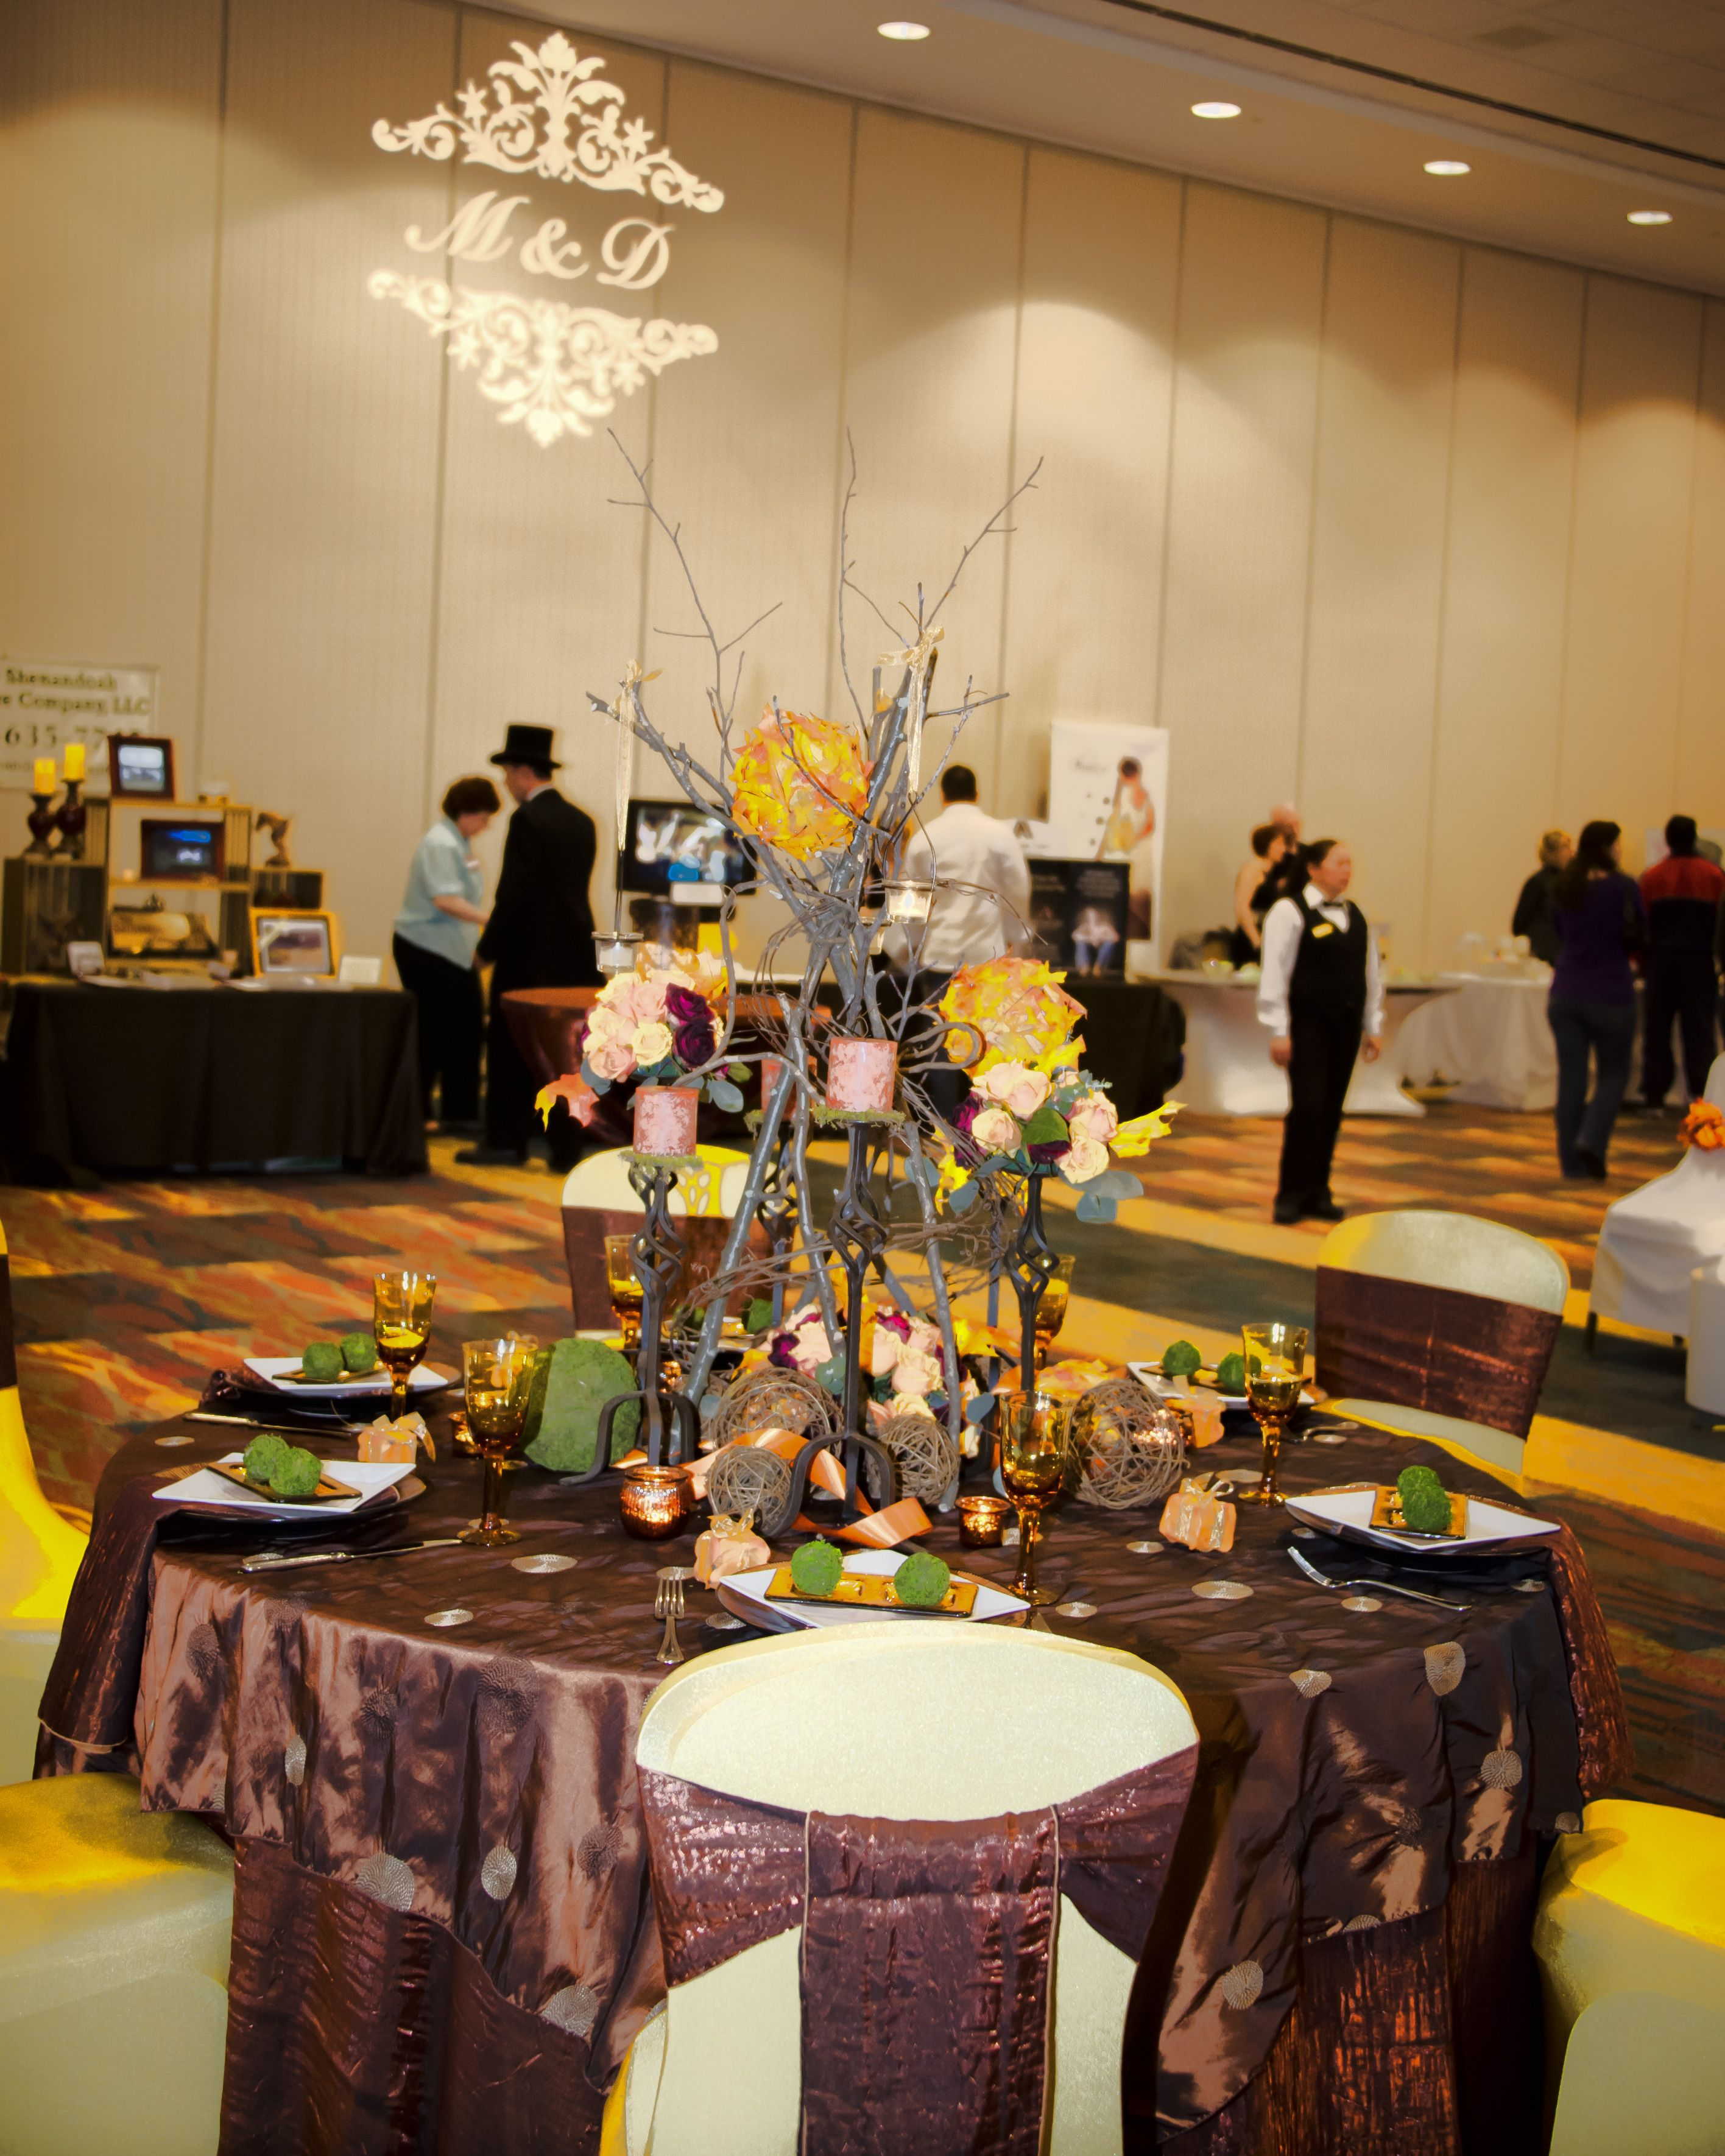 Western Wedding Ideas Centerpieces Fall Themed Decor West Belmont Place Blog